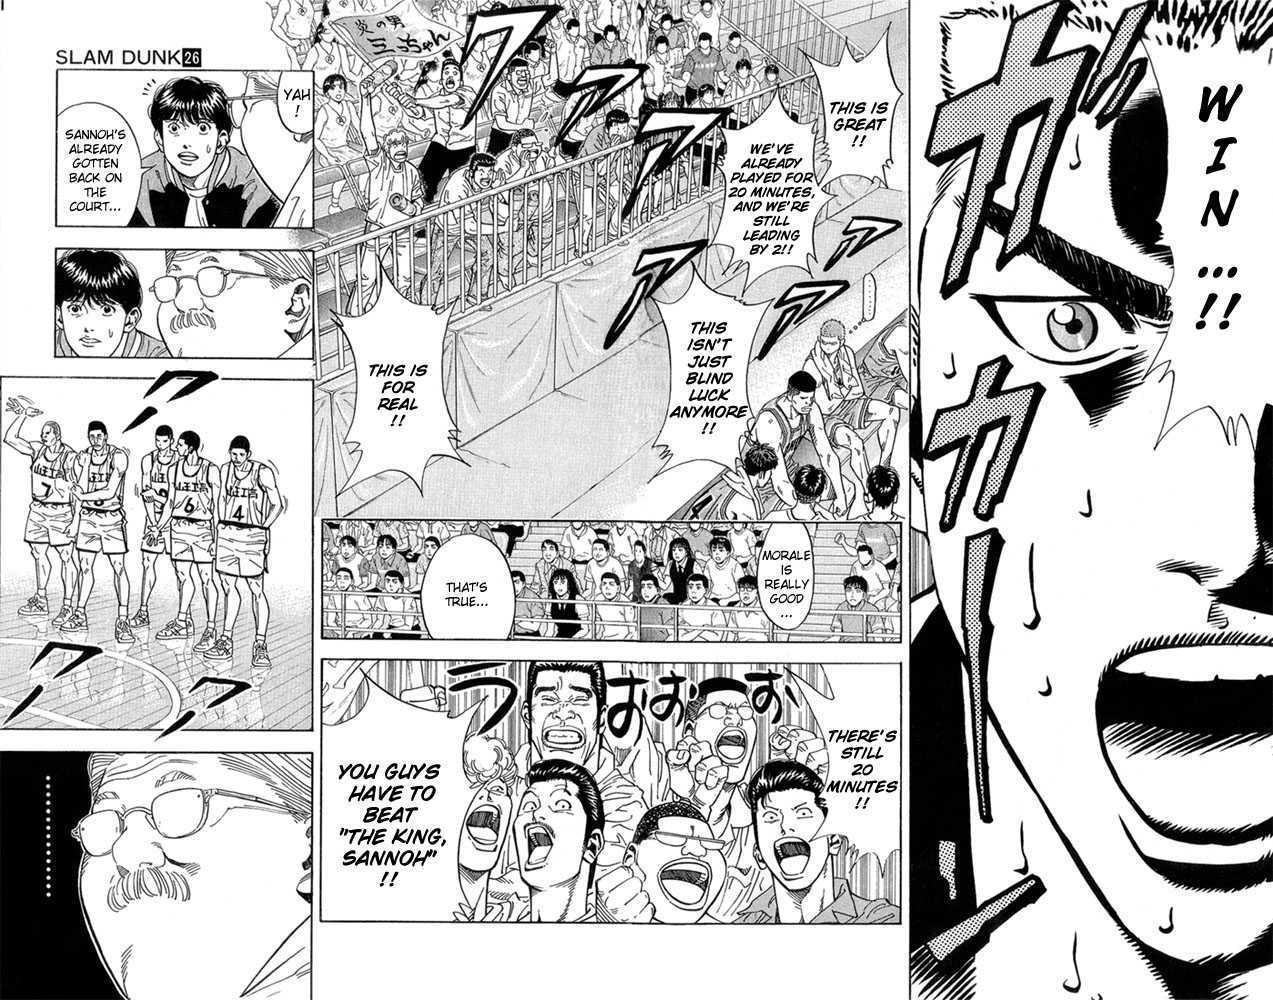 Slam Dunk 233 Page 2